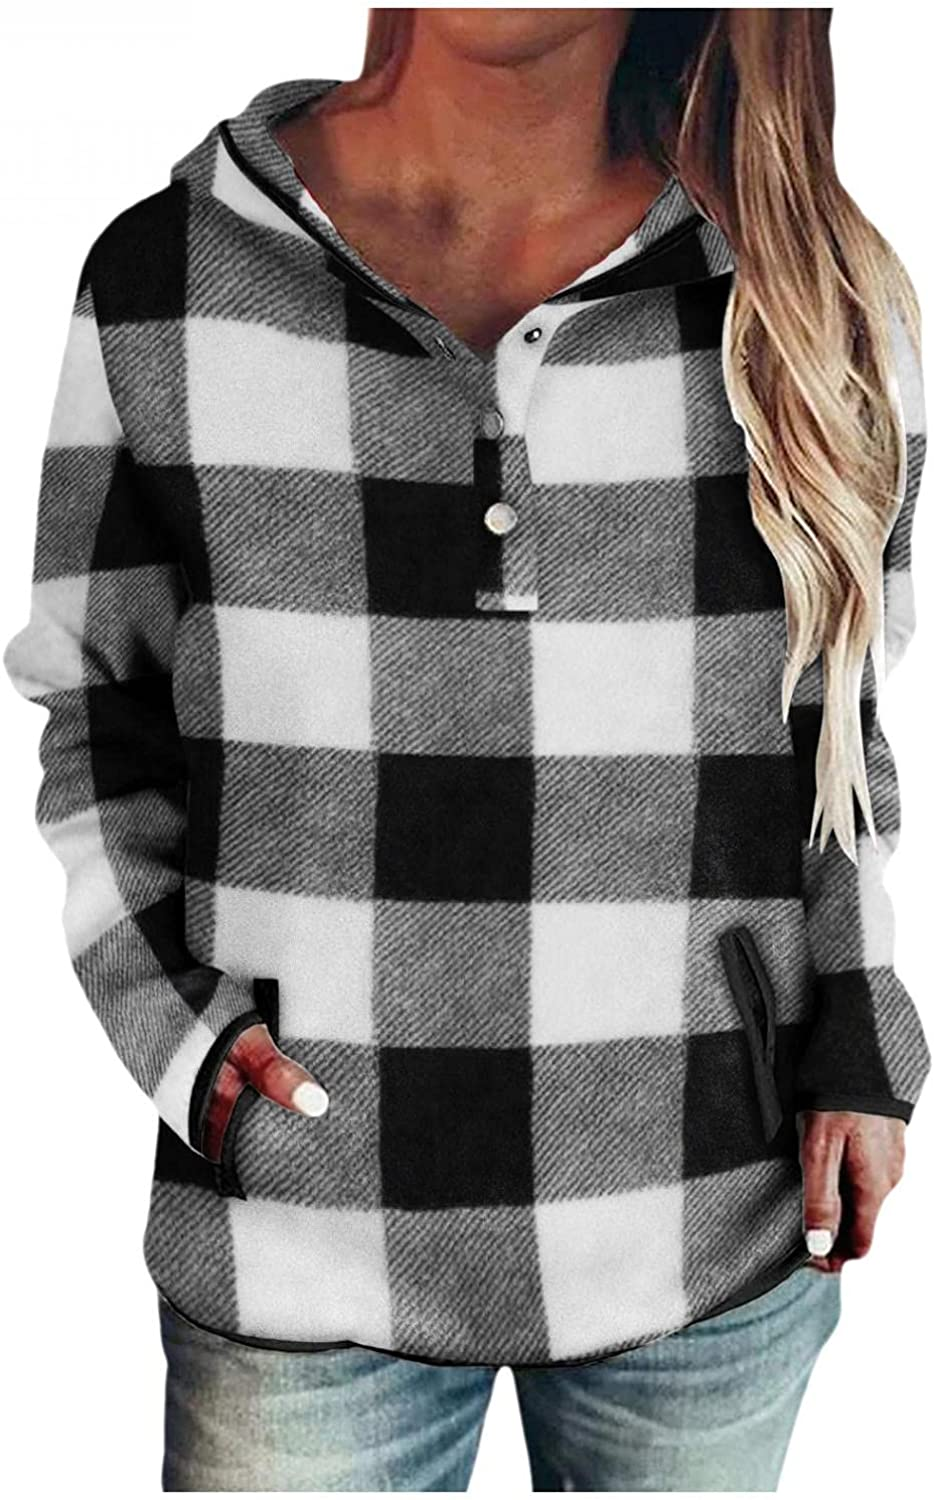 Pullover Hoodies for Women Pullover Sweatshirts Drawstring Hooded Casual Button Down Long Sleeve Plaid Tops with Pockets